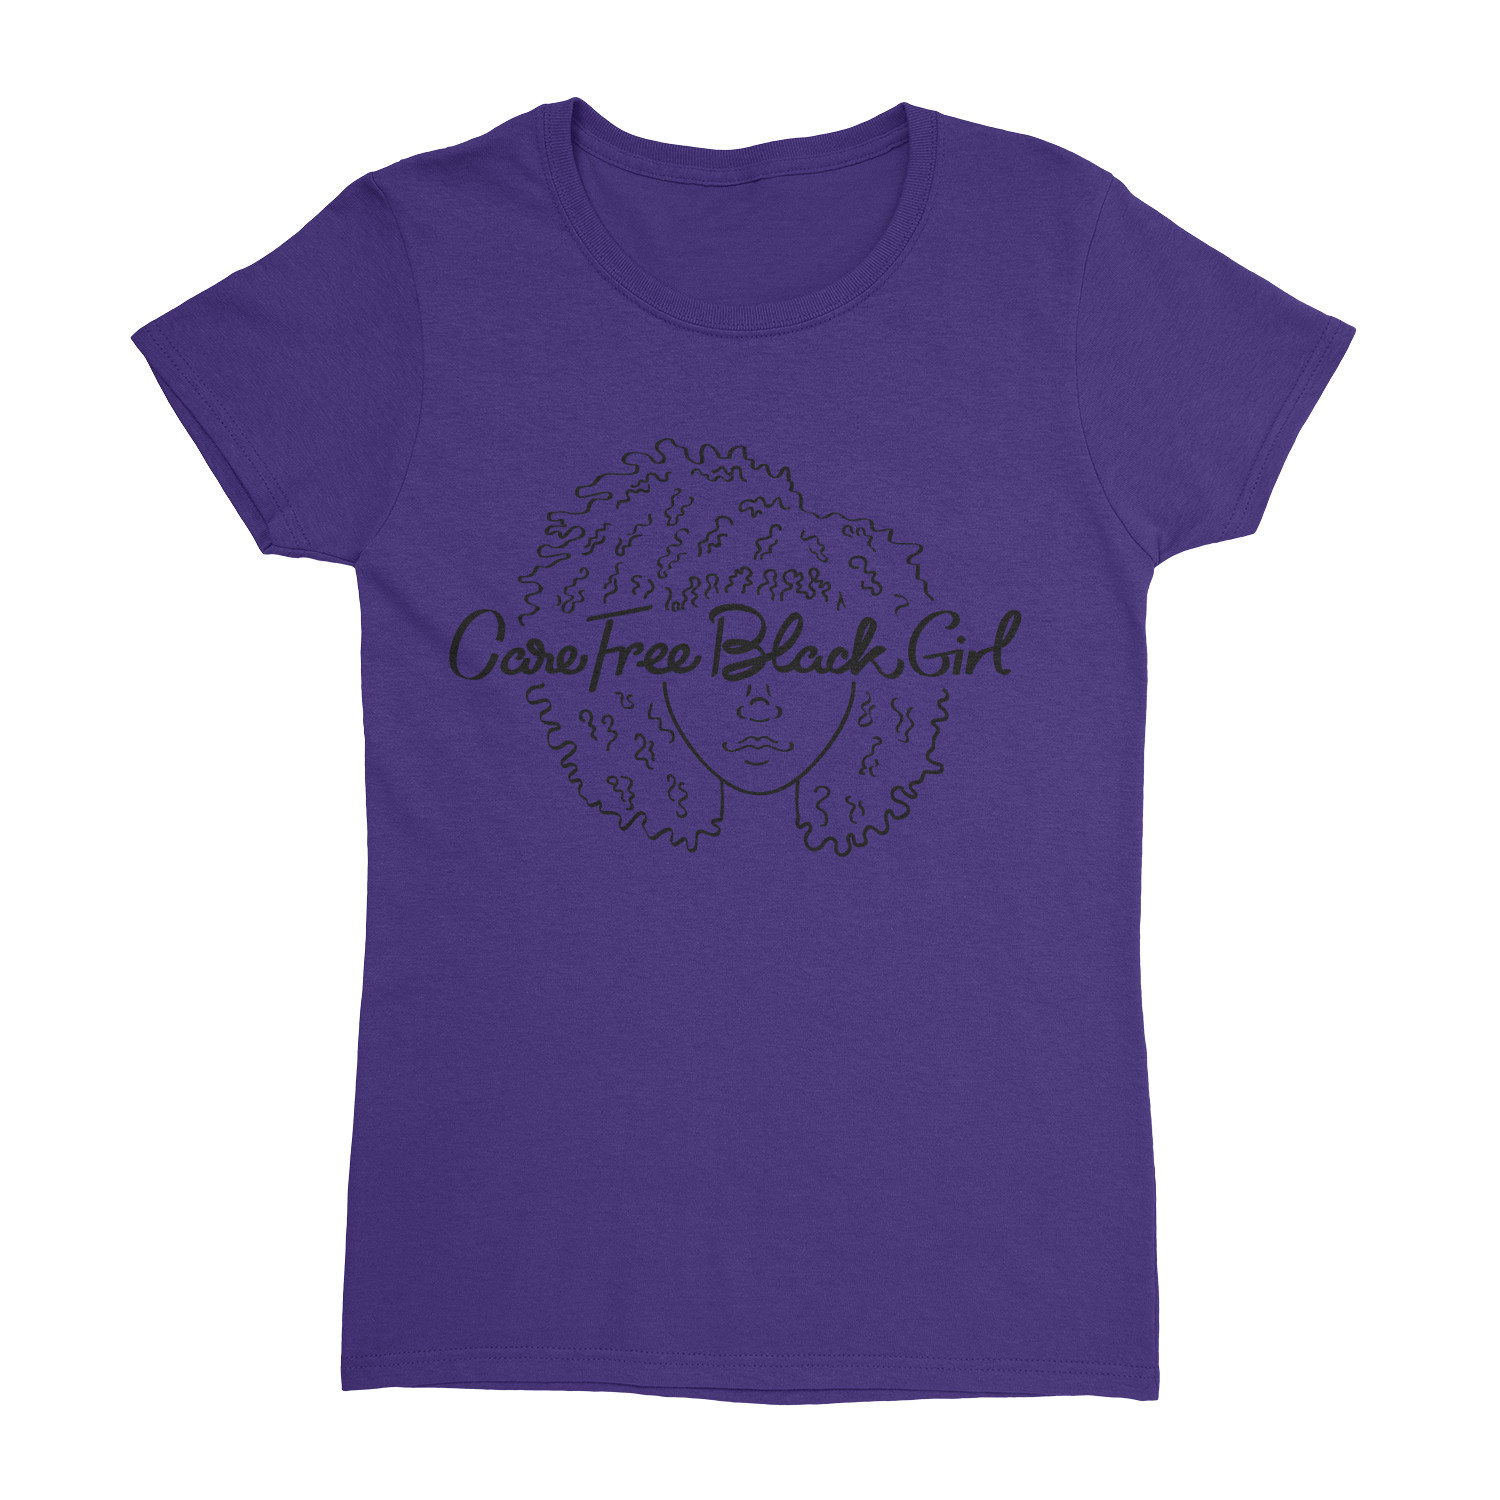 CAREFREEBLACKGIRL WOMEN'S CUT